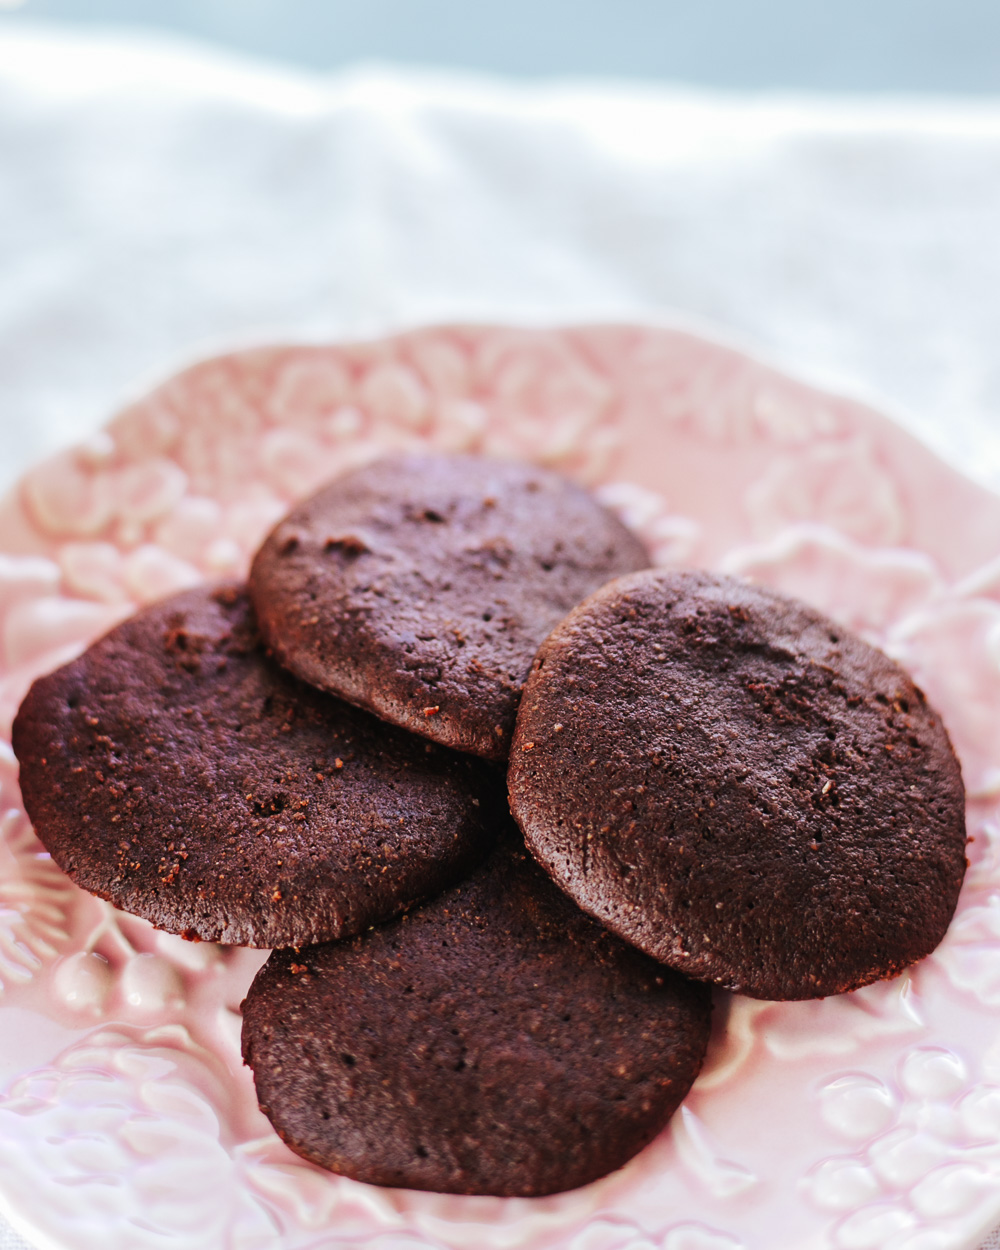 The Healthy Chewy Chocolate Cookies Recipe for the cookies that are seriously easy to make, low-calorie and most importantly super-yummy!